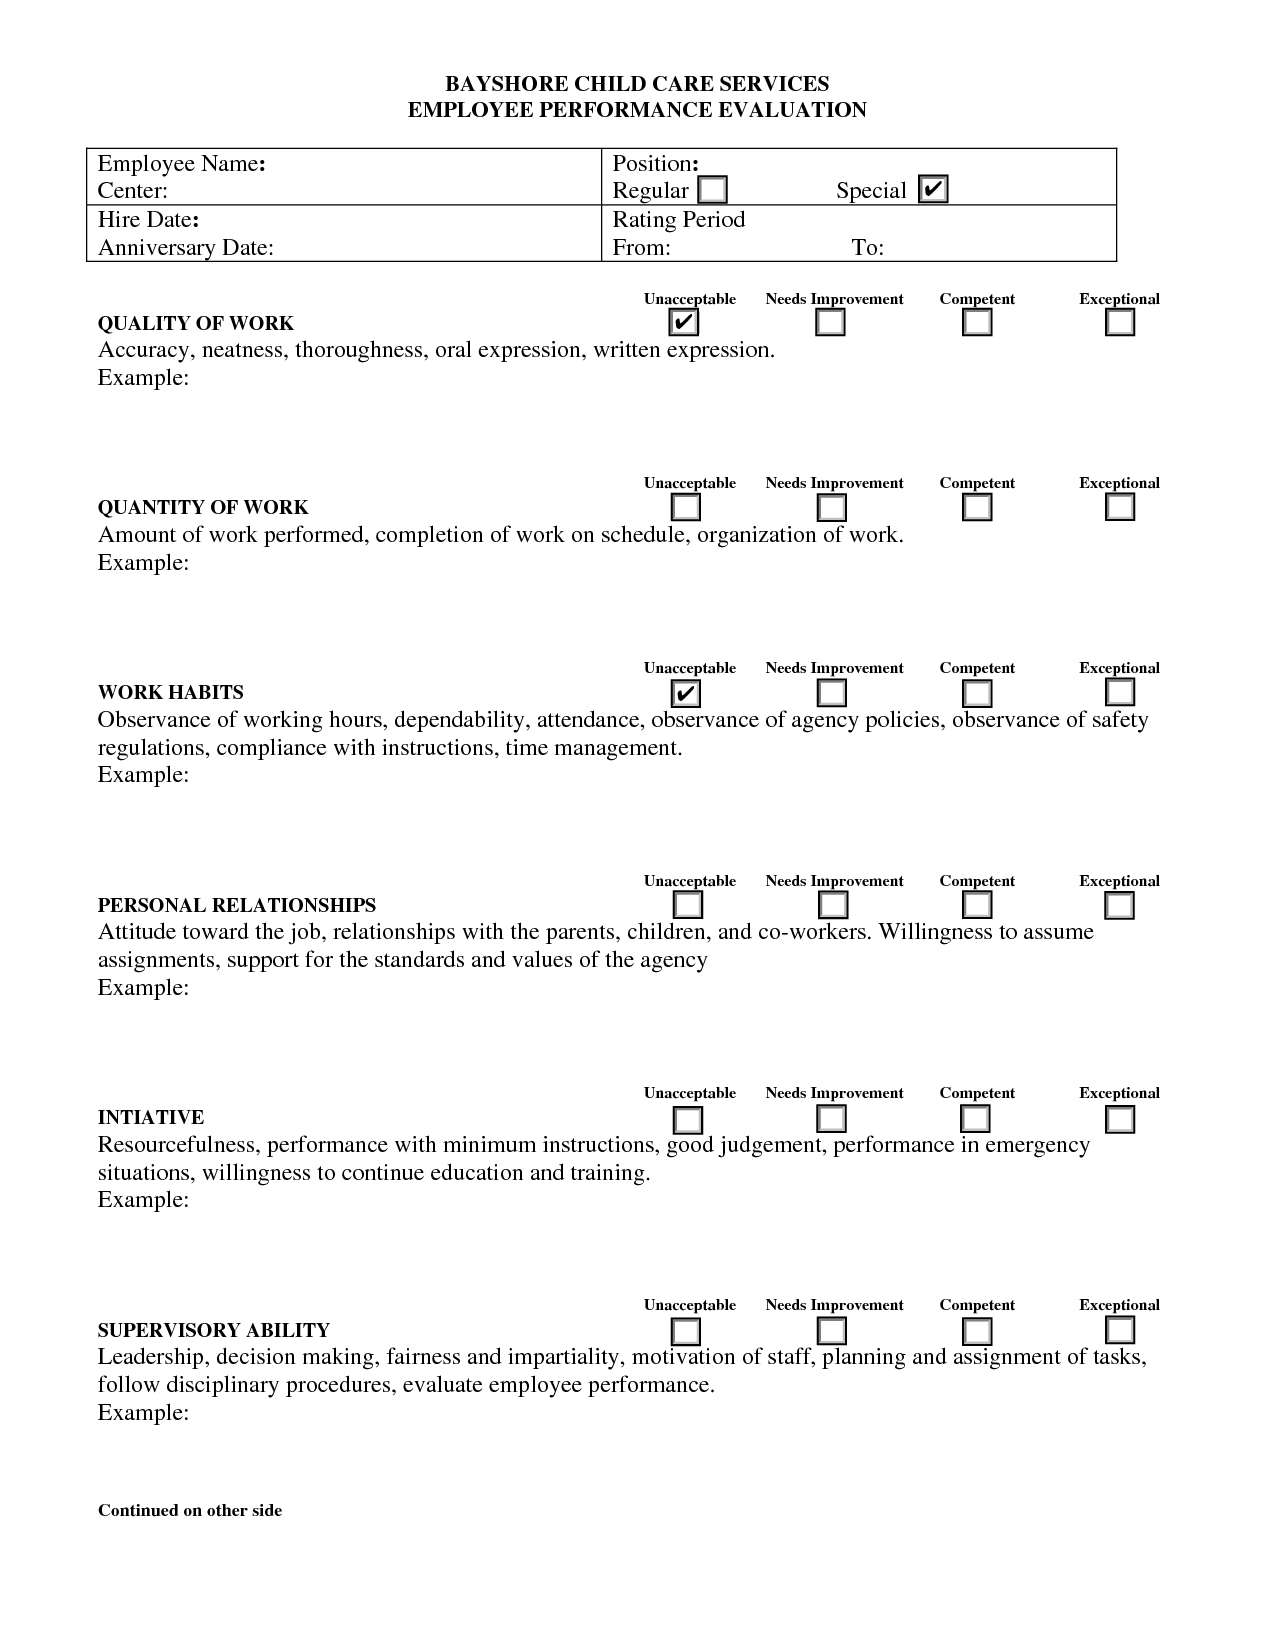 Evaluation Form For Child Care